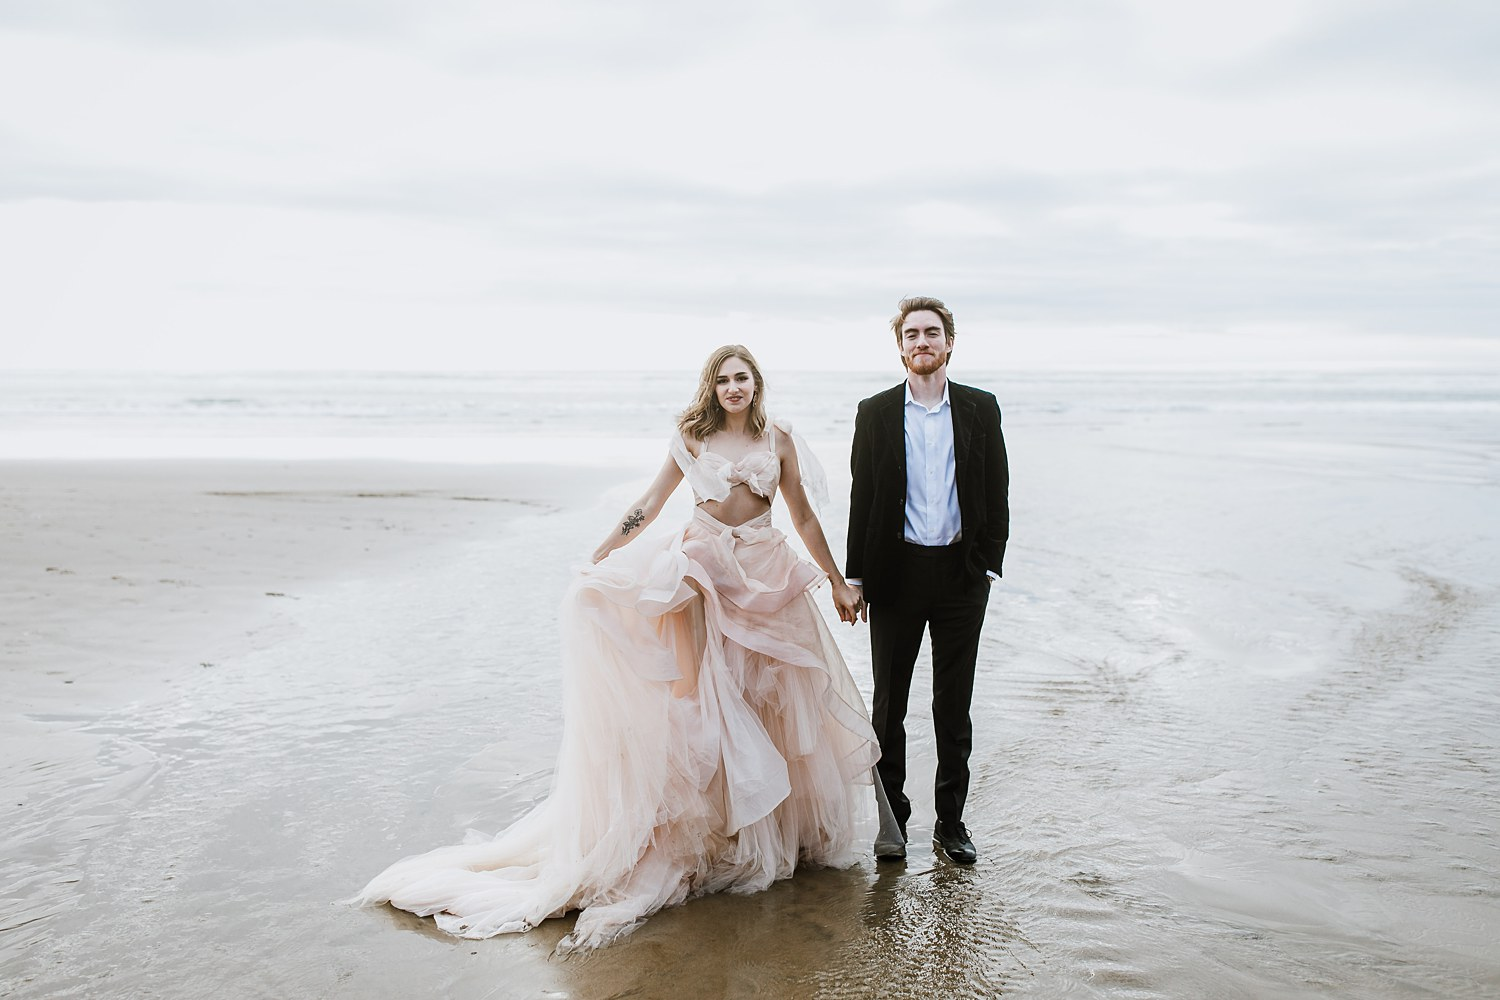 Claire La Faye Wedding dress on a beautiful beach in Oregon.